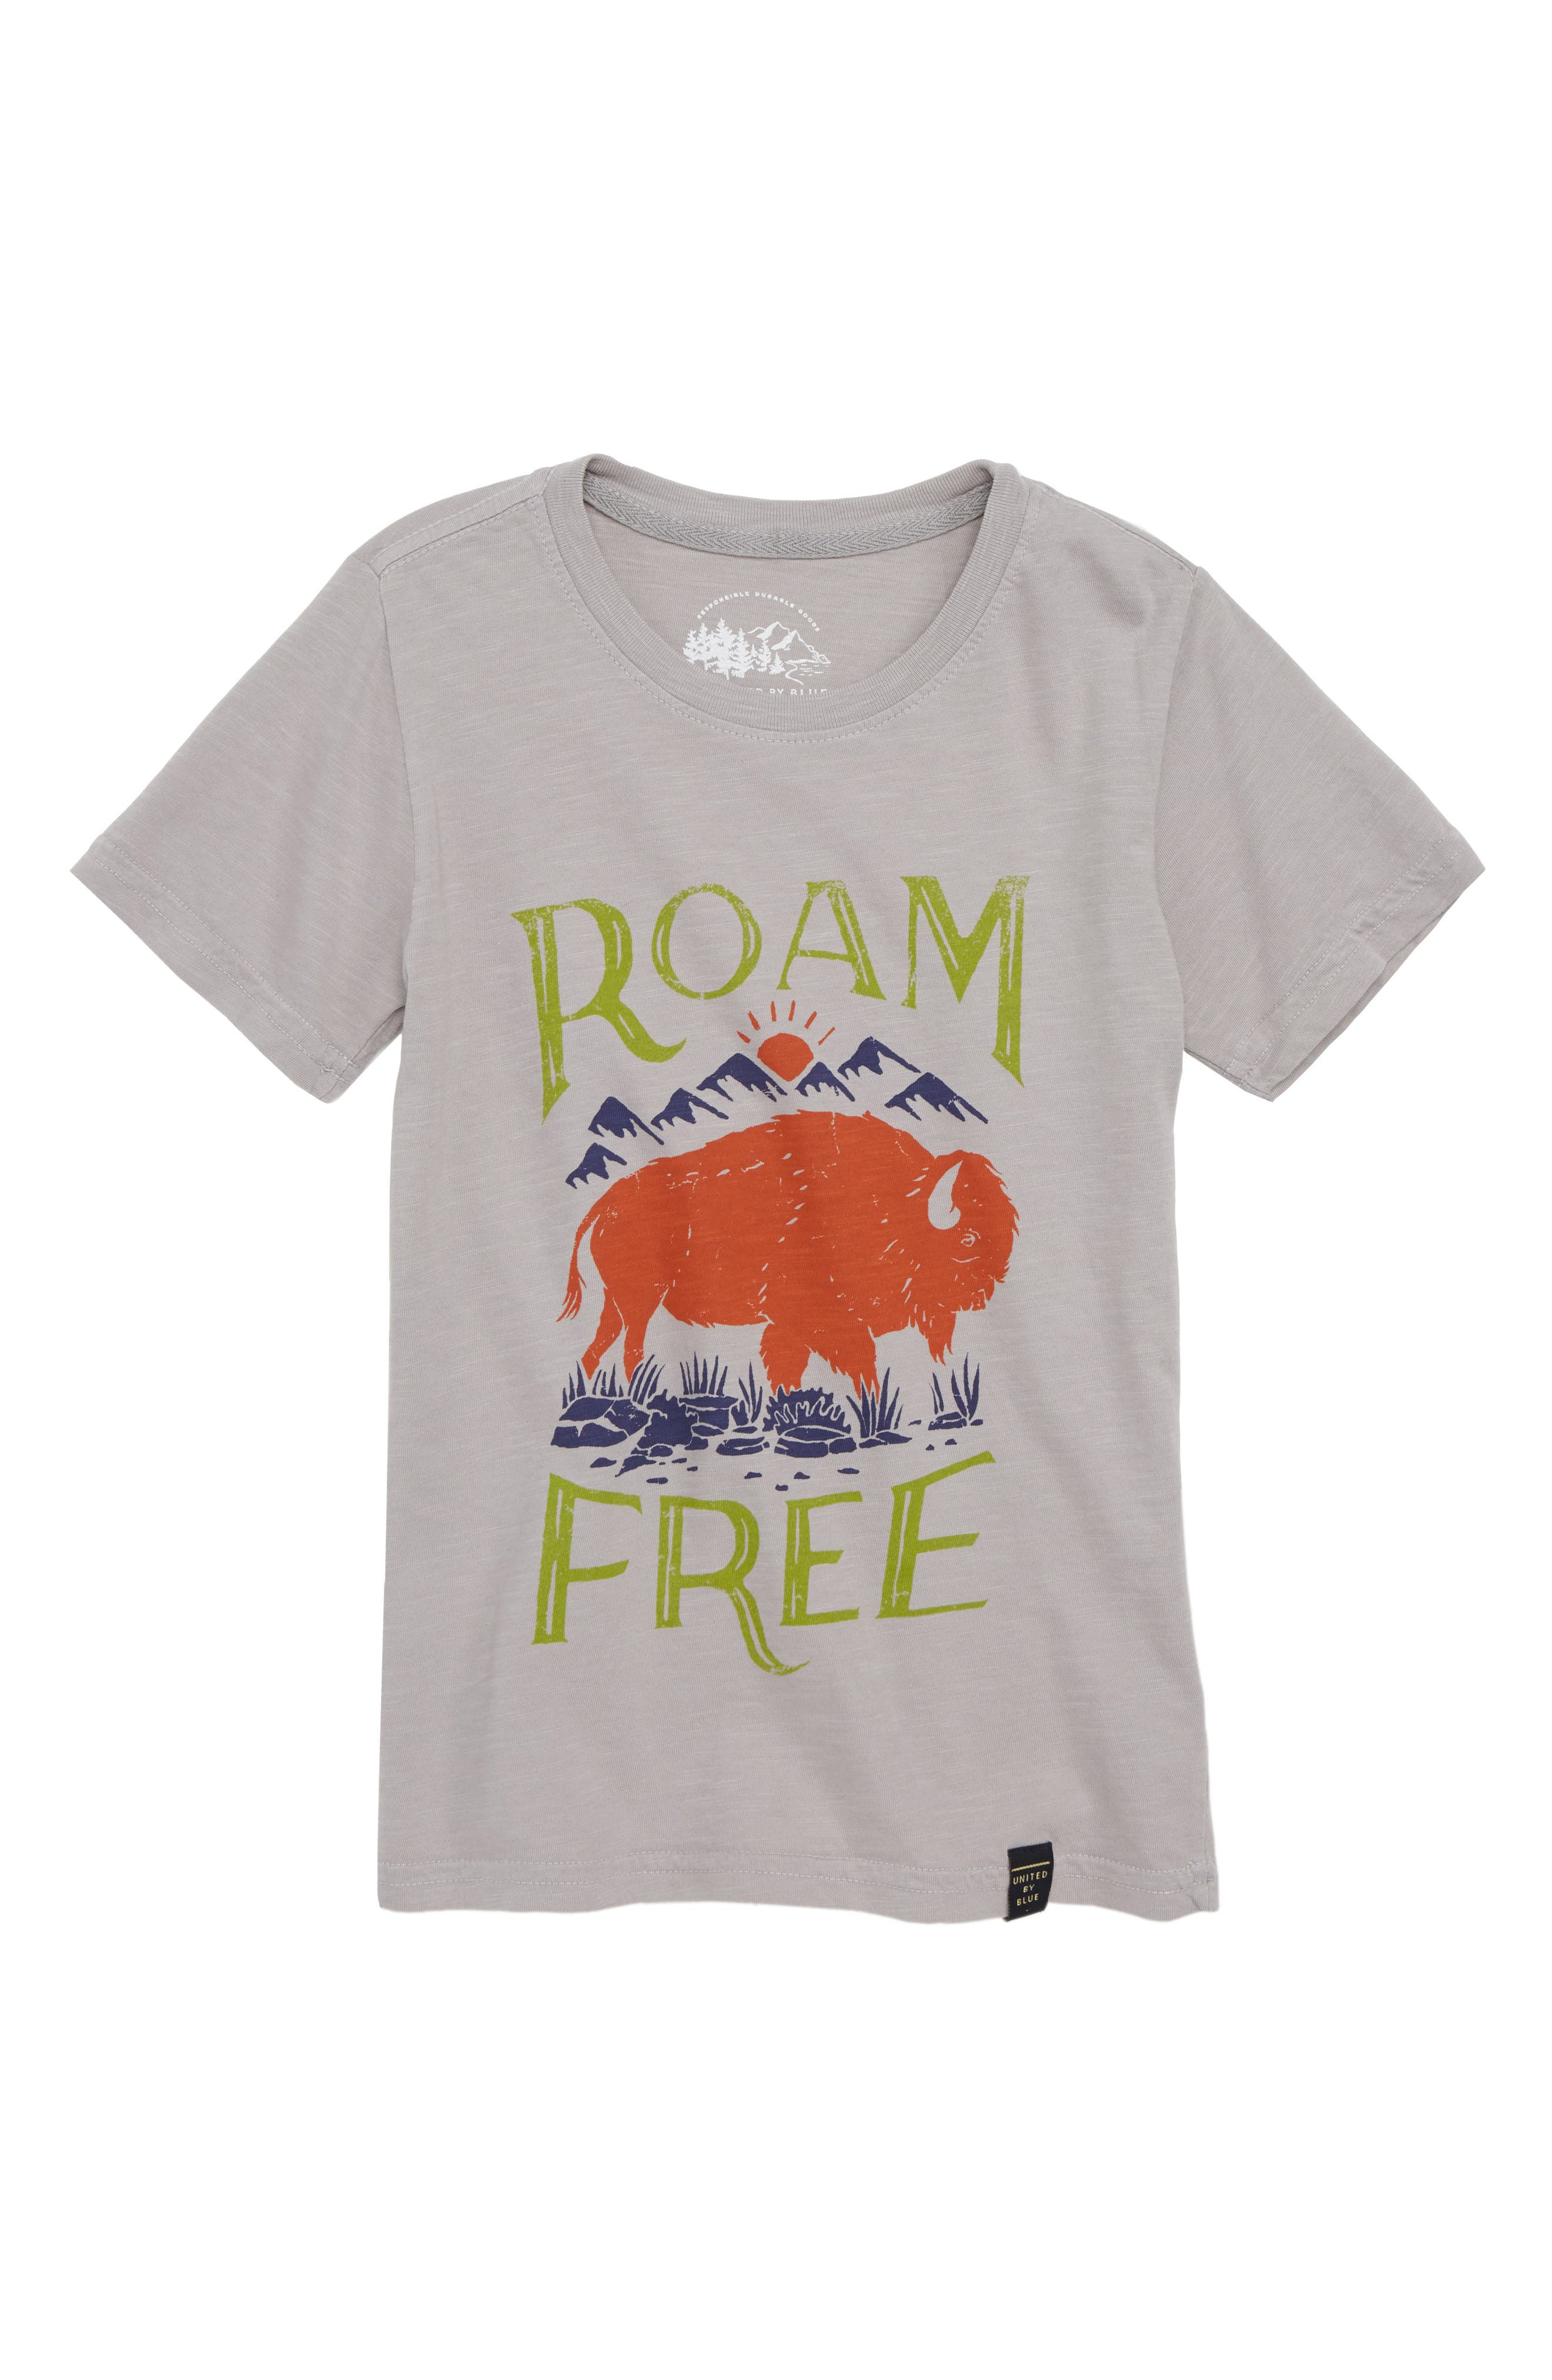 Roam Free Graphic T-Shirt,                         Main,                         color, 020